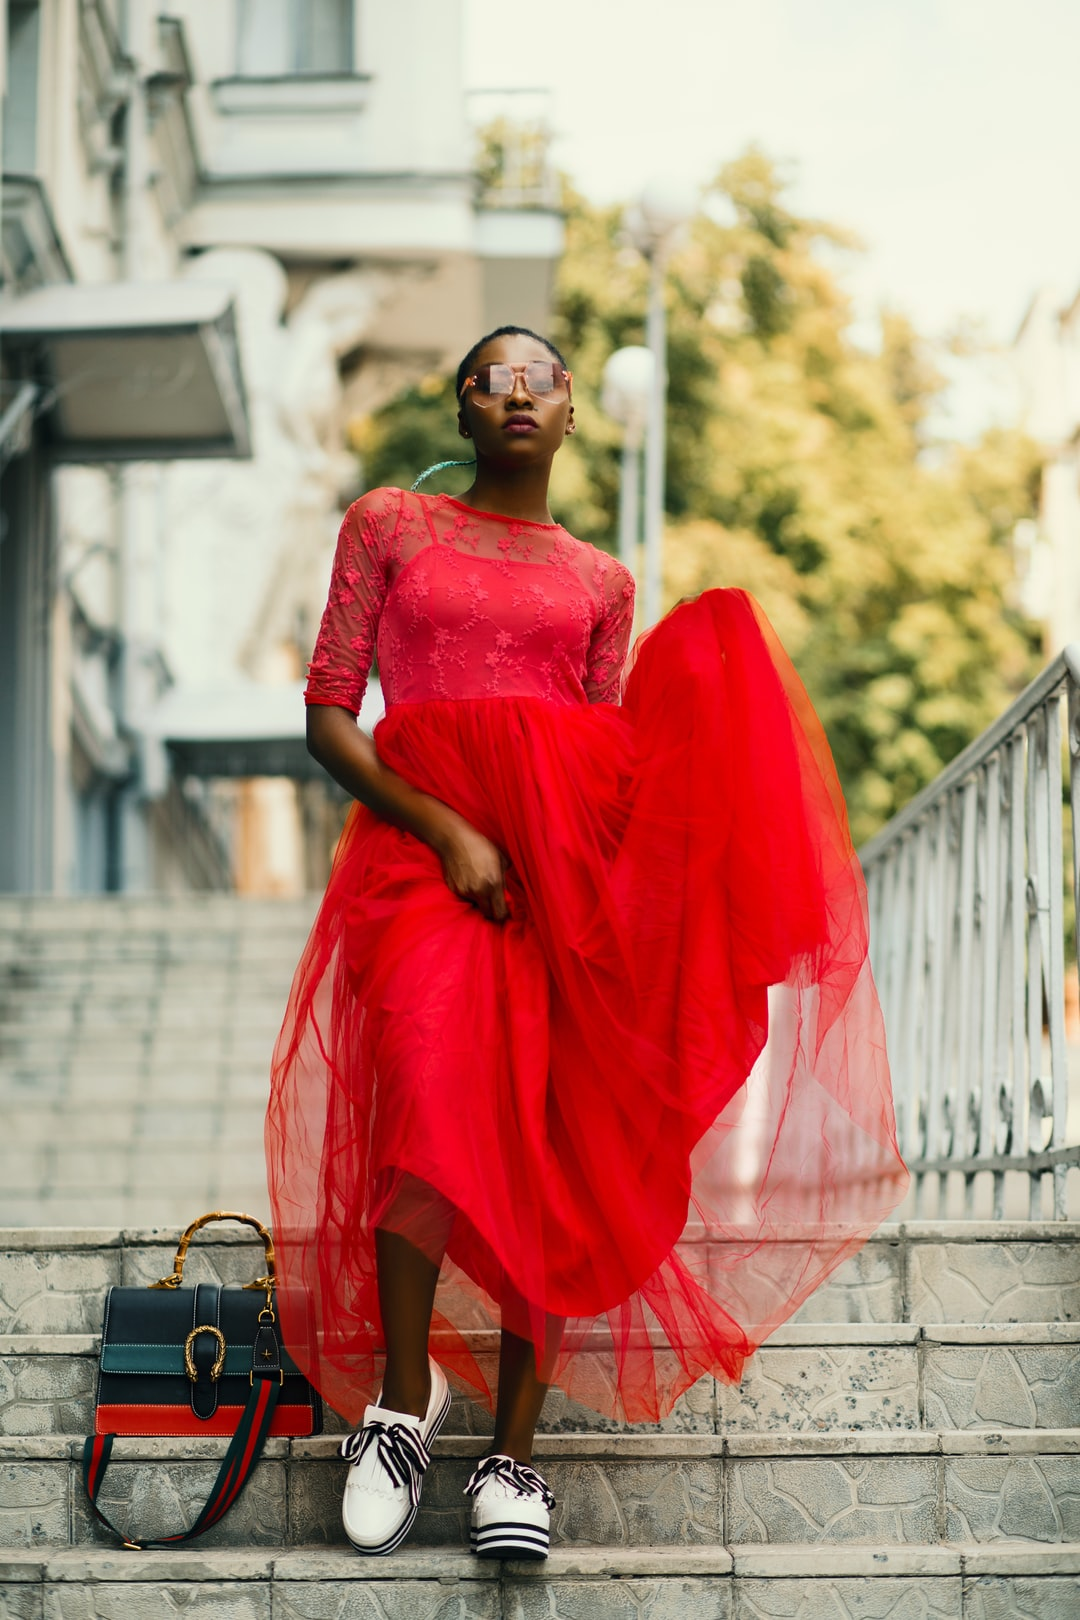 The Future of the Fashion Industry in South Africa